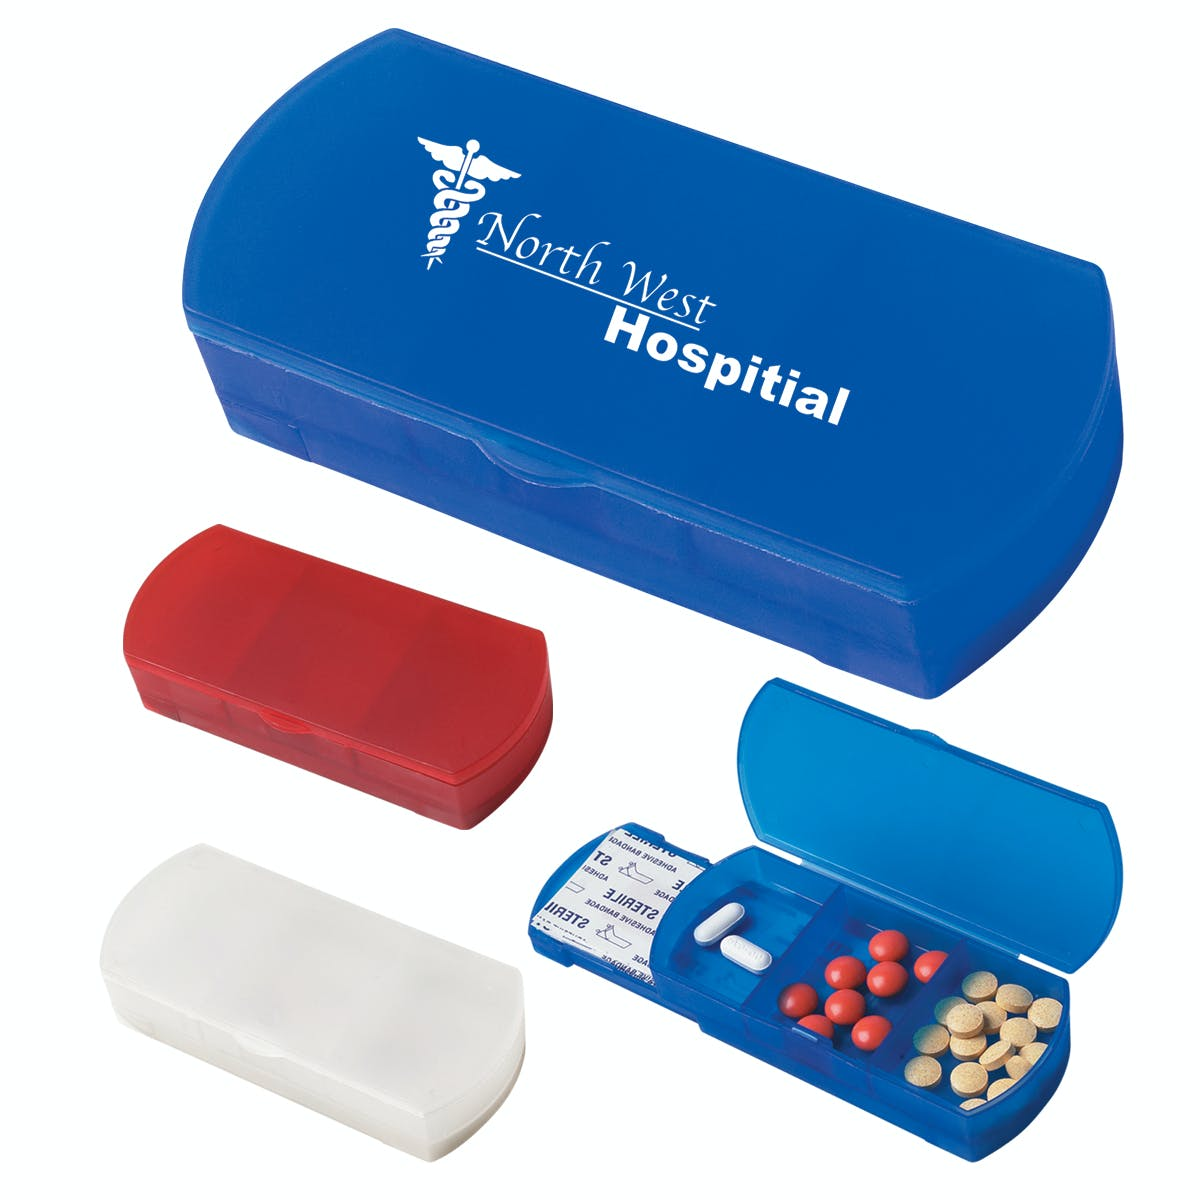 Pill Box/Bandage Dispenser (Item # EBMLL-GHFWK) Custom packaging sold by InkEasy